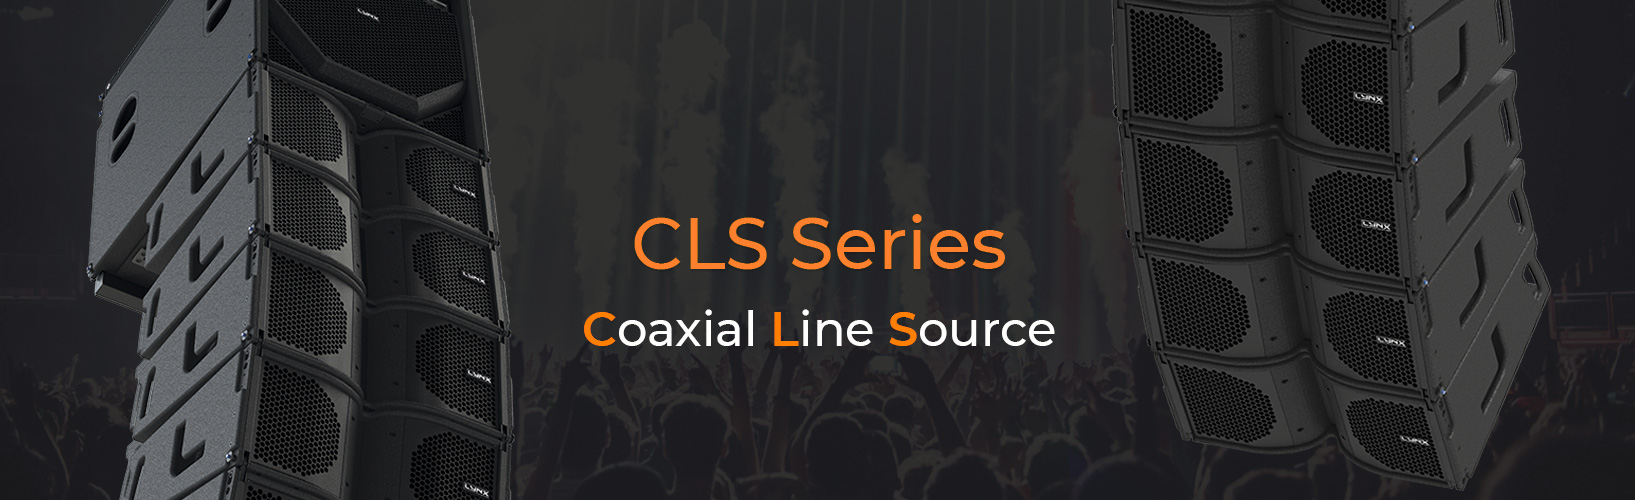 Lynx Pro Audio coaxial line source line array CLS